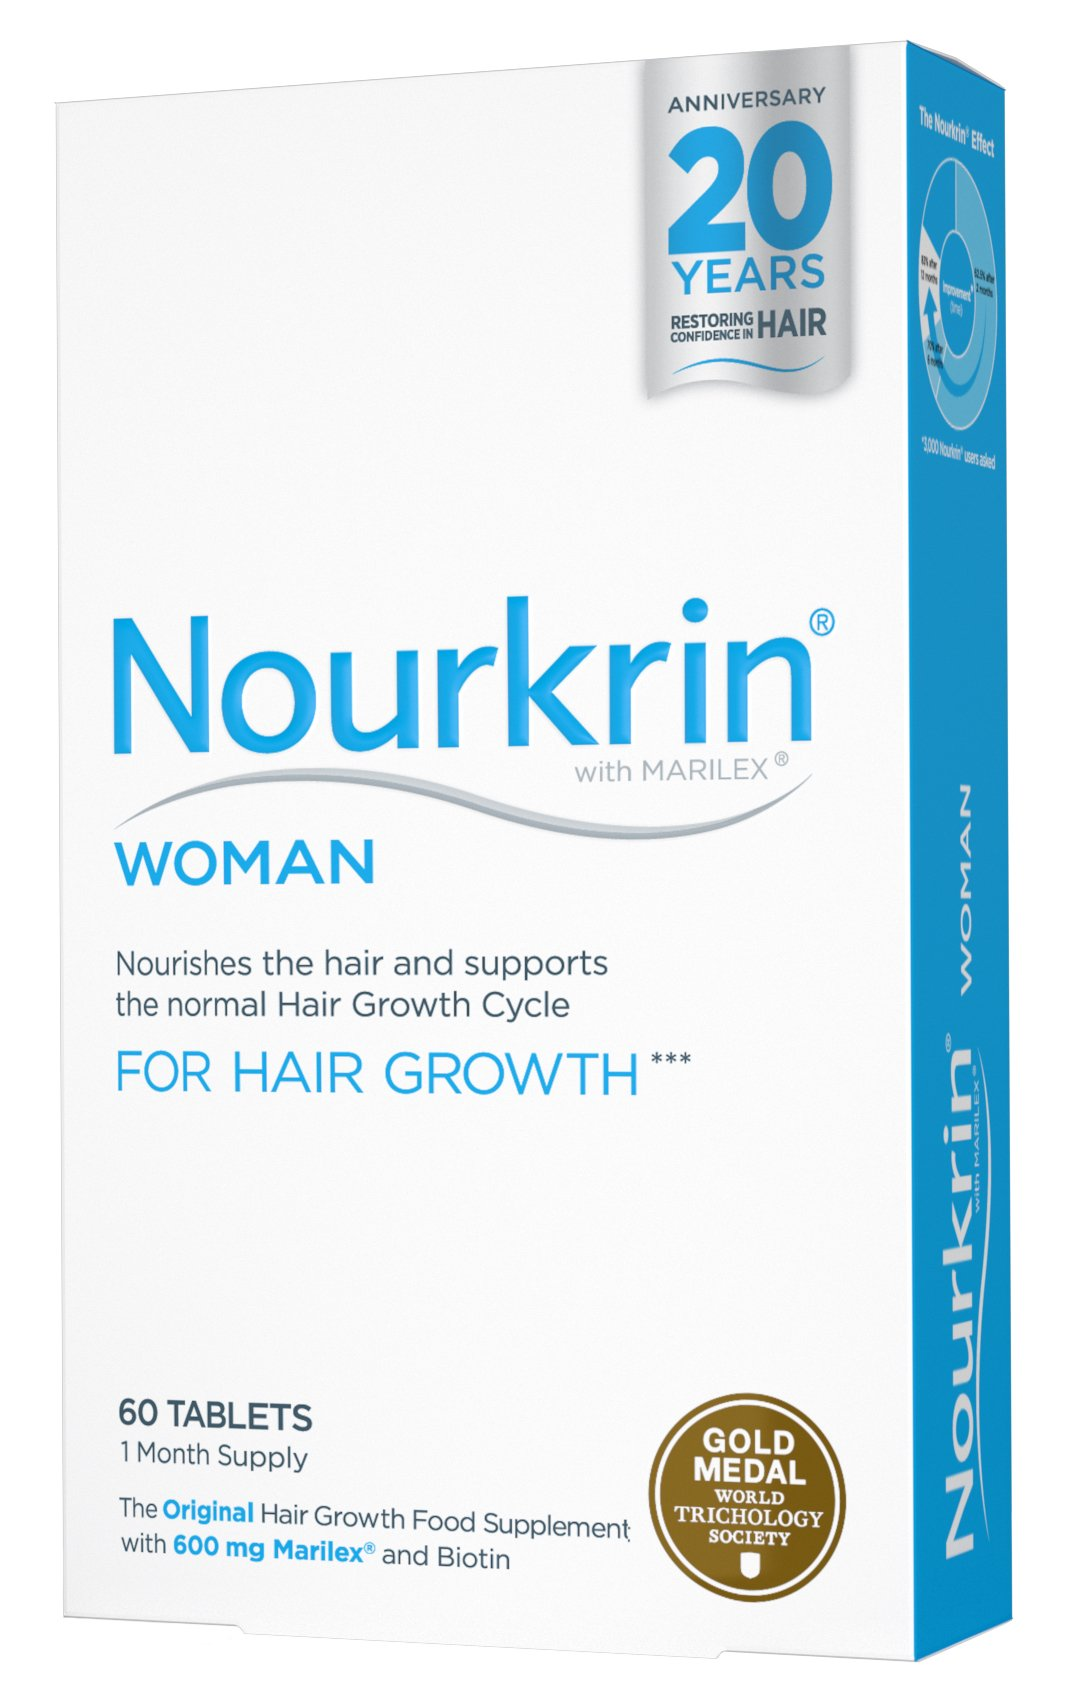 Nourkrin Extra Strength Hair Recovery Programme 60 Tablets 1 Month Supply